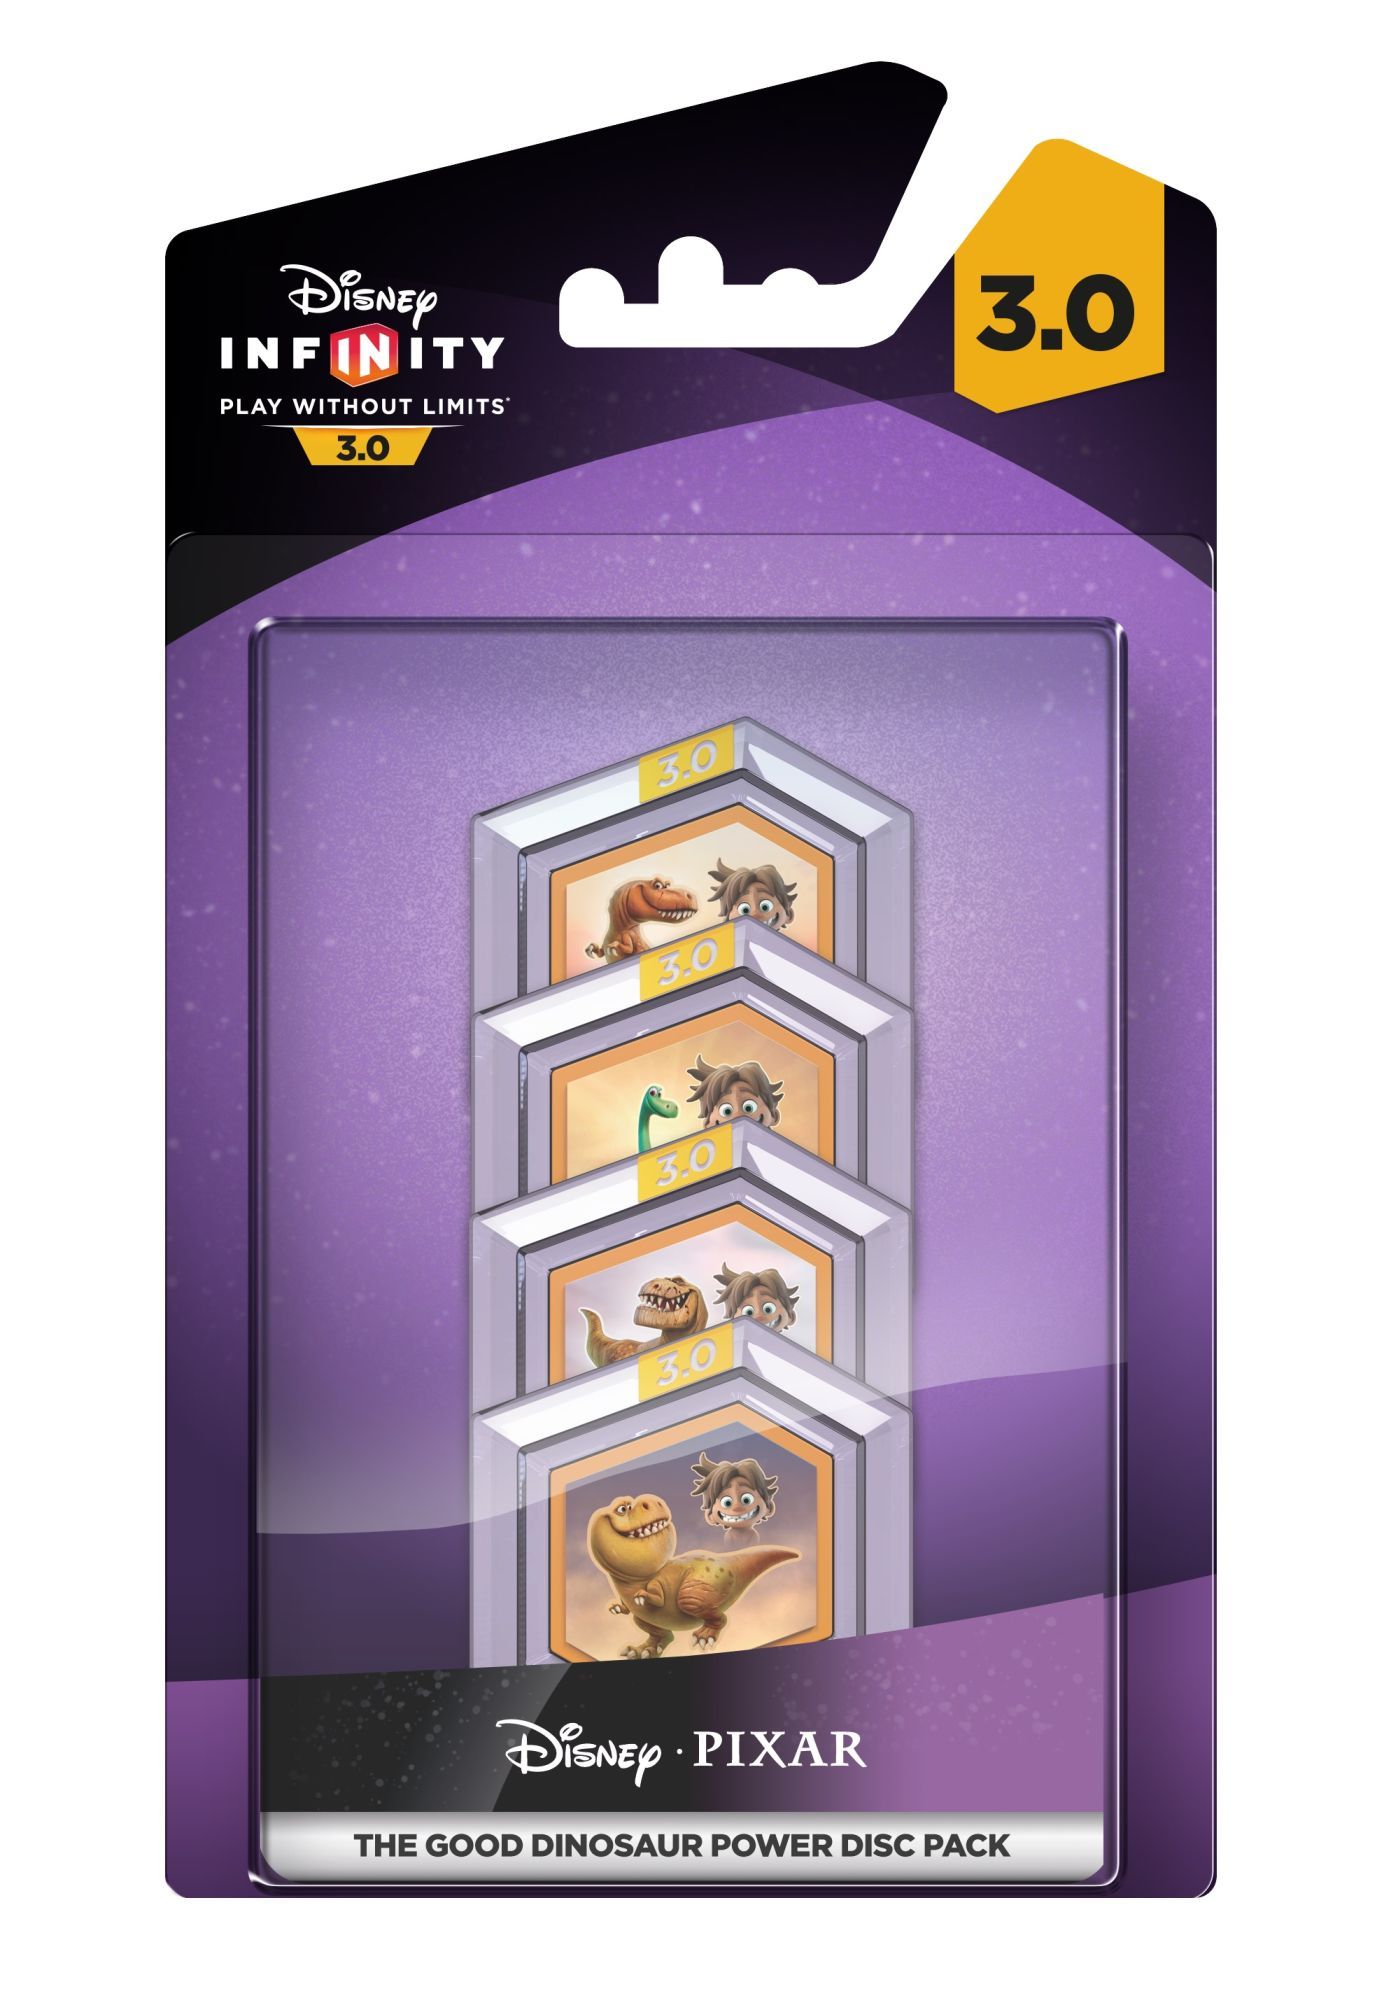 Bild Disney Infinity 3.0 - The Good Dinosaur Bonus-Coins-Set (Xbox 360, Xbox One, PlayStation 3, PC, WII U & Nintendo 3DS)